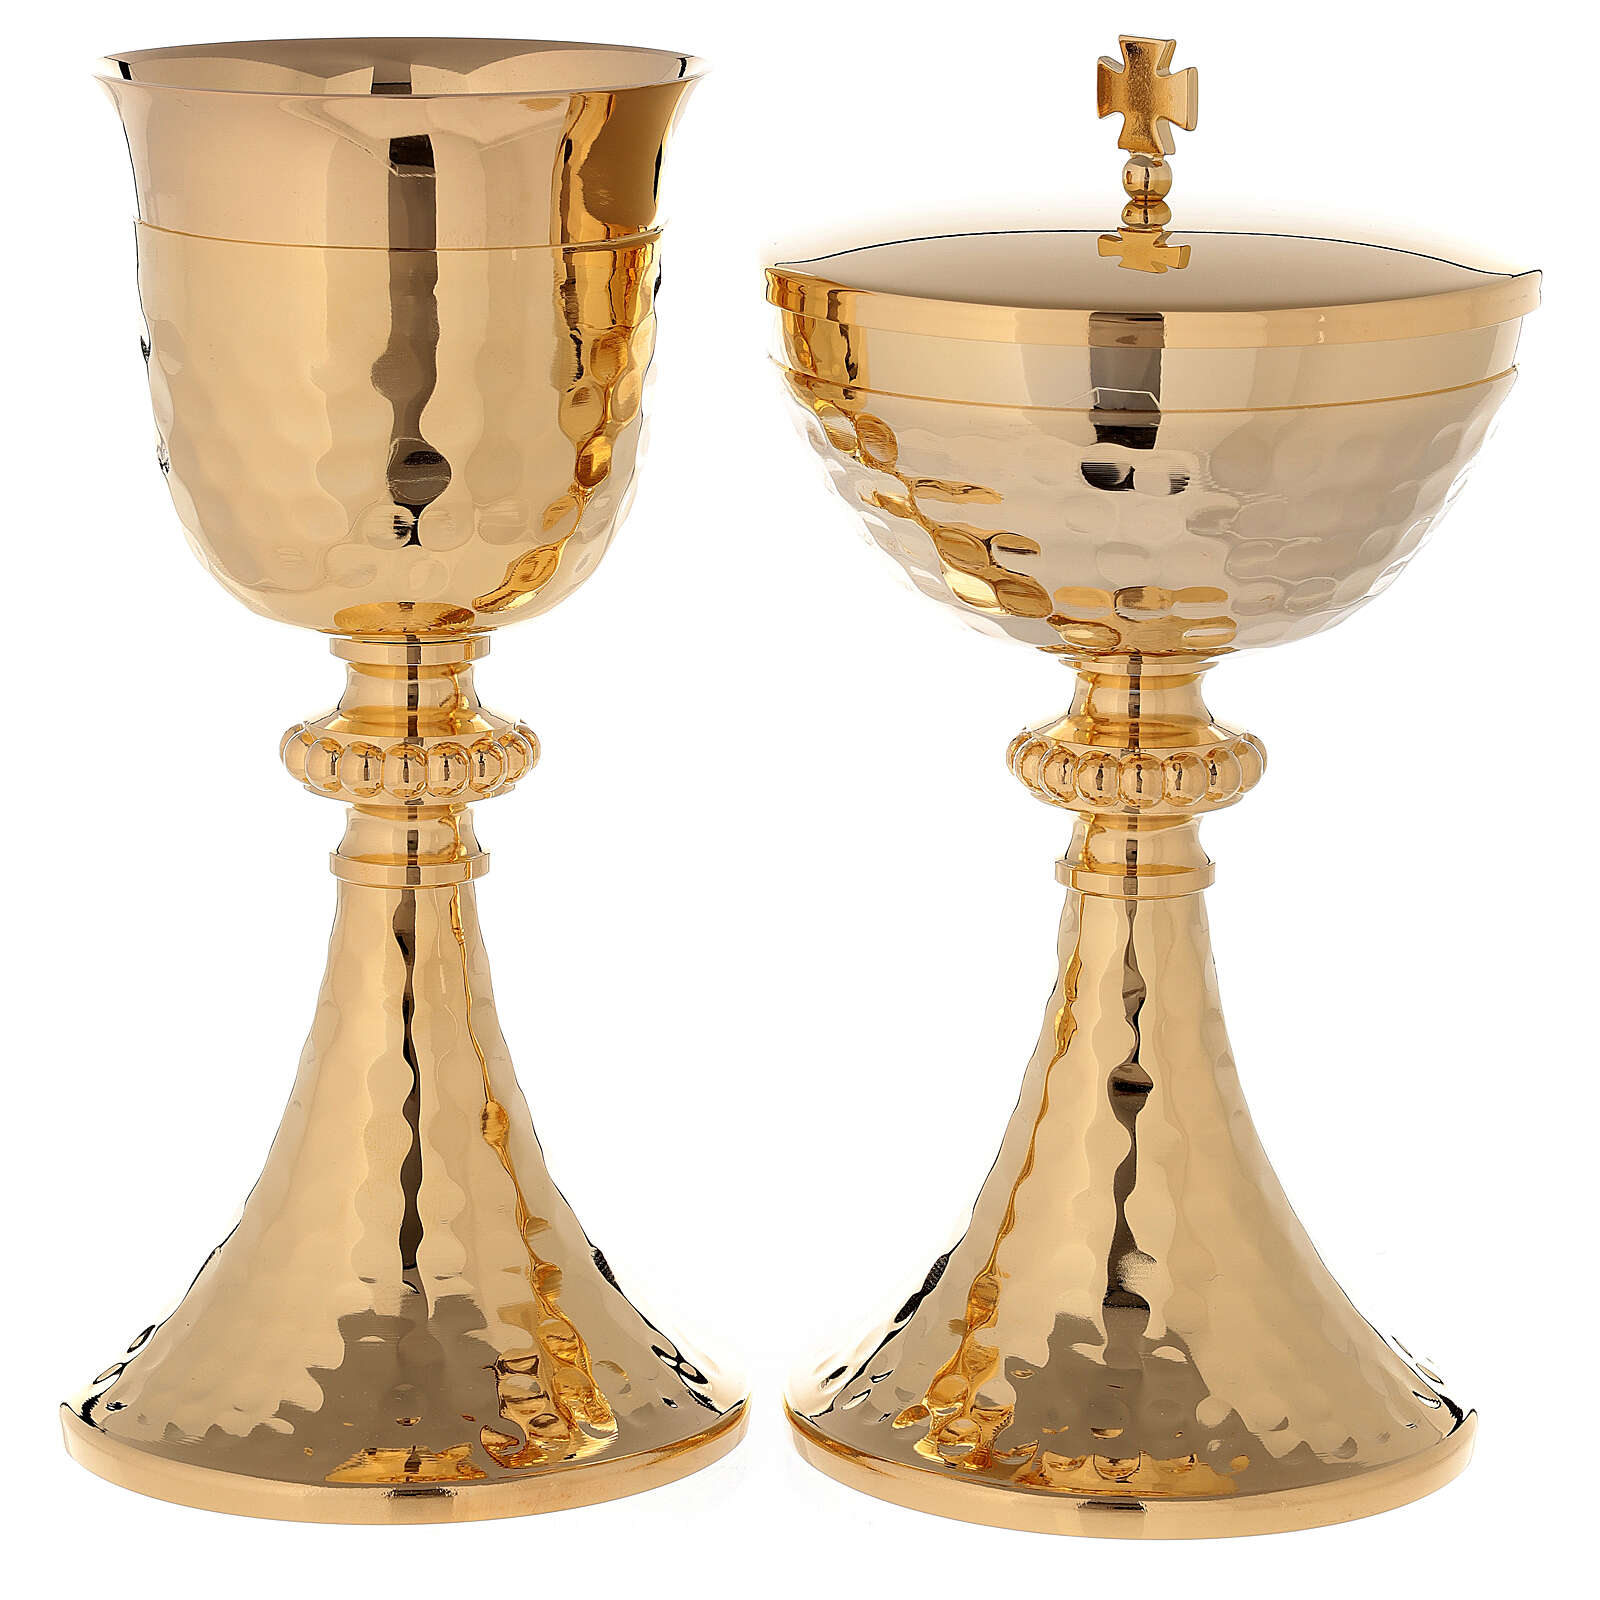 Goblet and Pyx in 24k golden brass with hammered base and undercoat 4